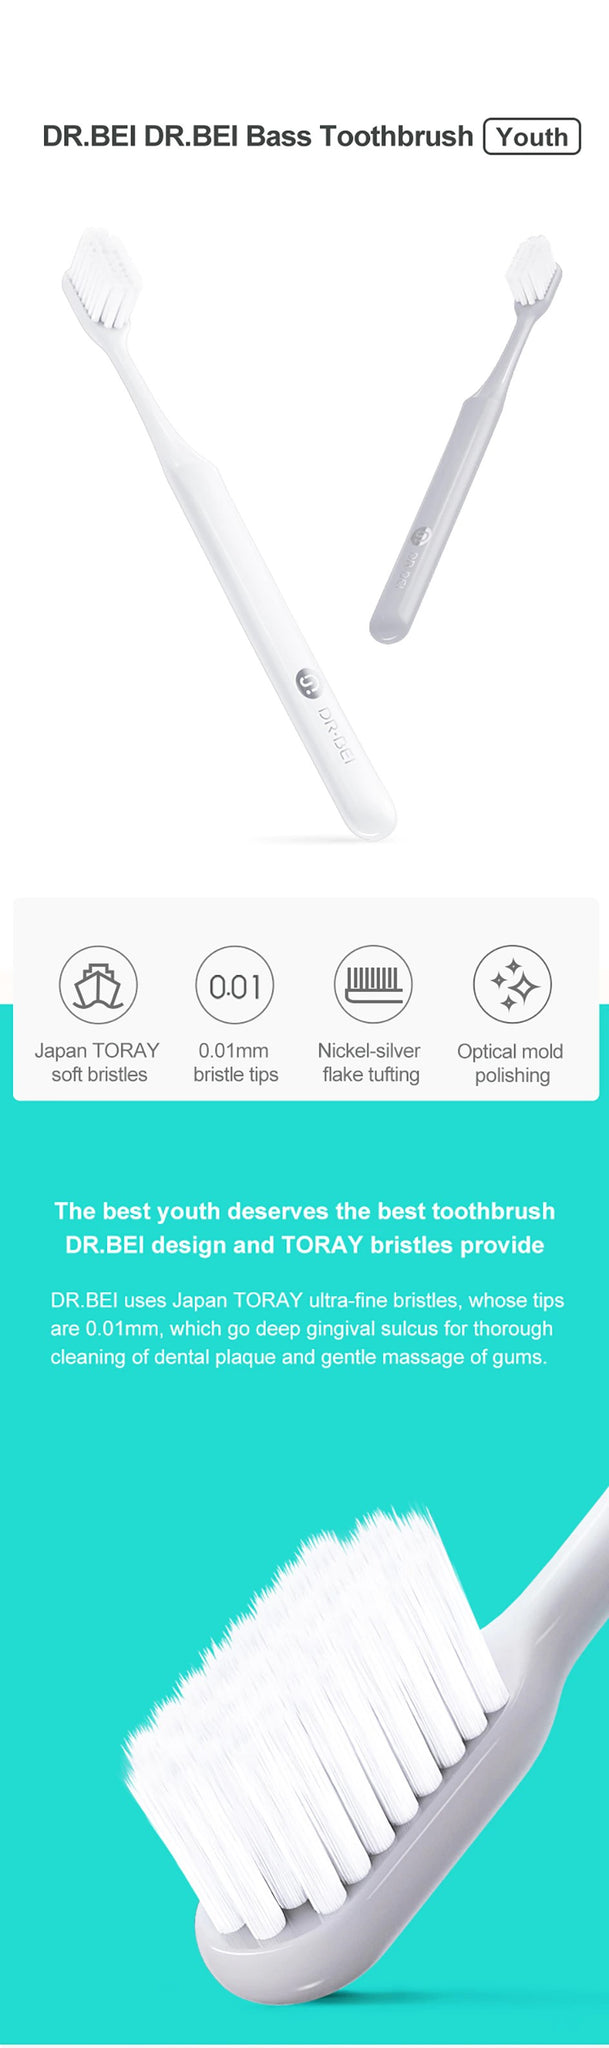 DR.BEI Bass Toothbrush (Youth) Xiaomi Youpin DR·BEI Bass Toothbrush Youth Version Ultra-fine Soft Bristles 2 Colors Dental Care Beauty Health Tooth Brushes